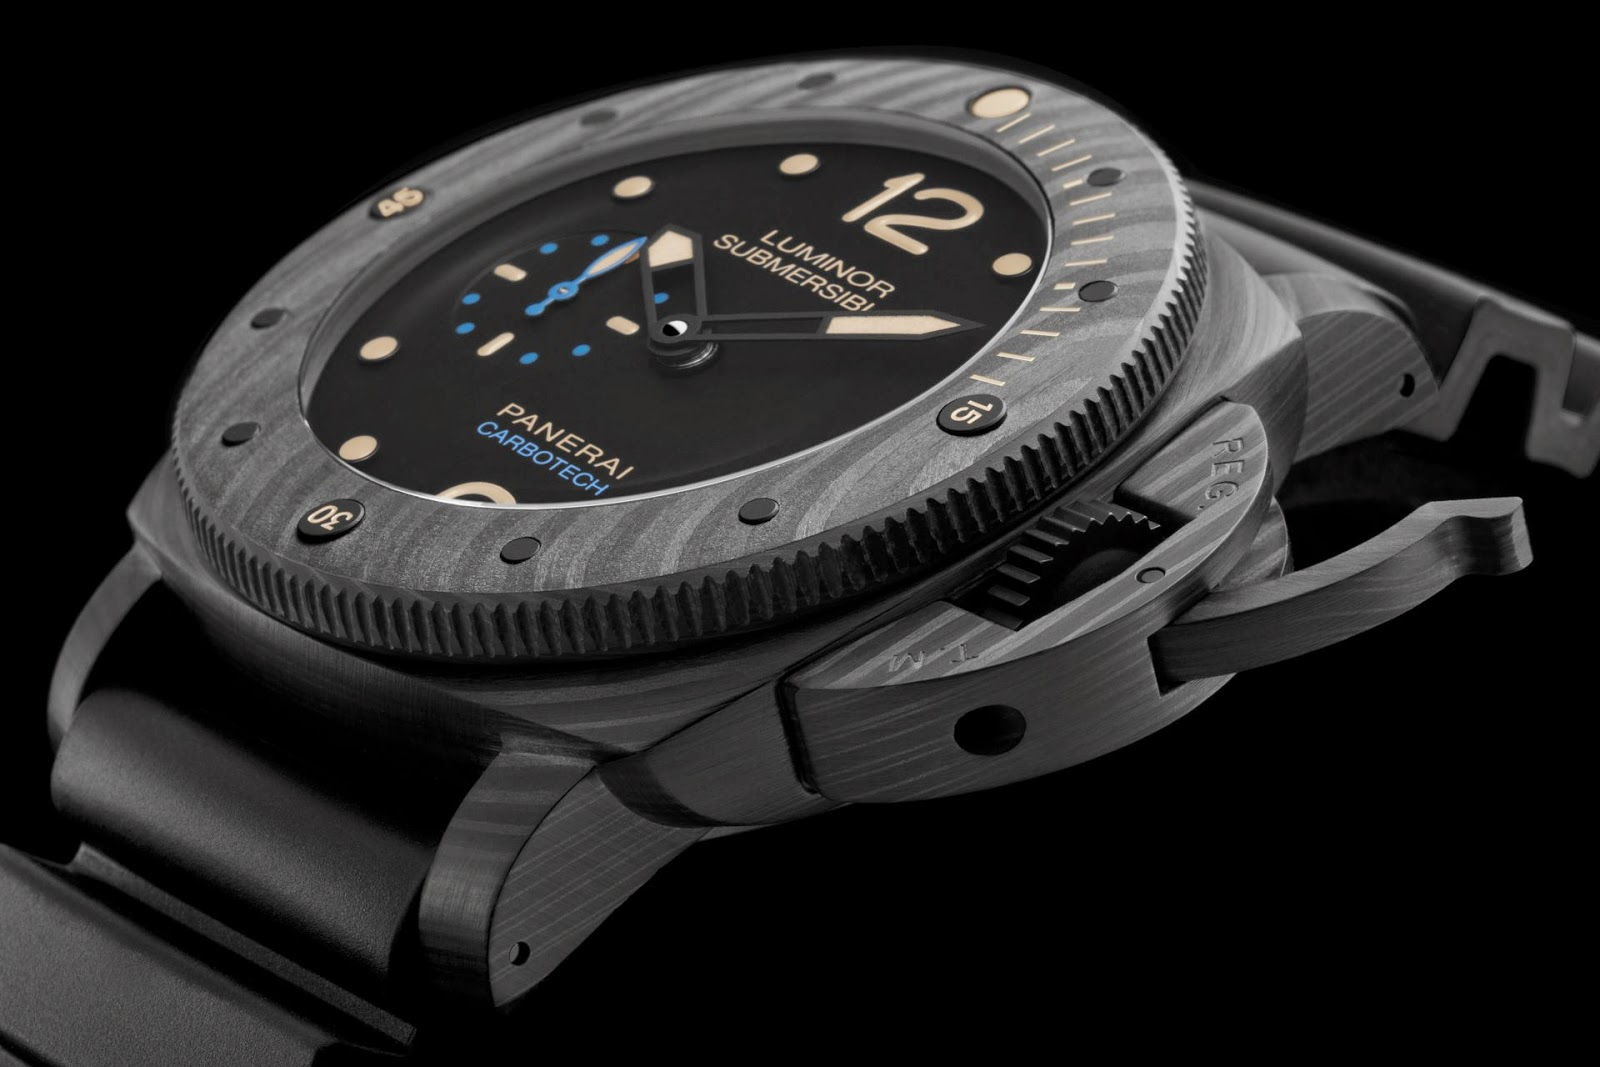 Panerai Luminor Submersible 1950 CarbotechTM 3 Days Automatic - 47mm, Reference: PAM00616